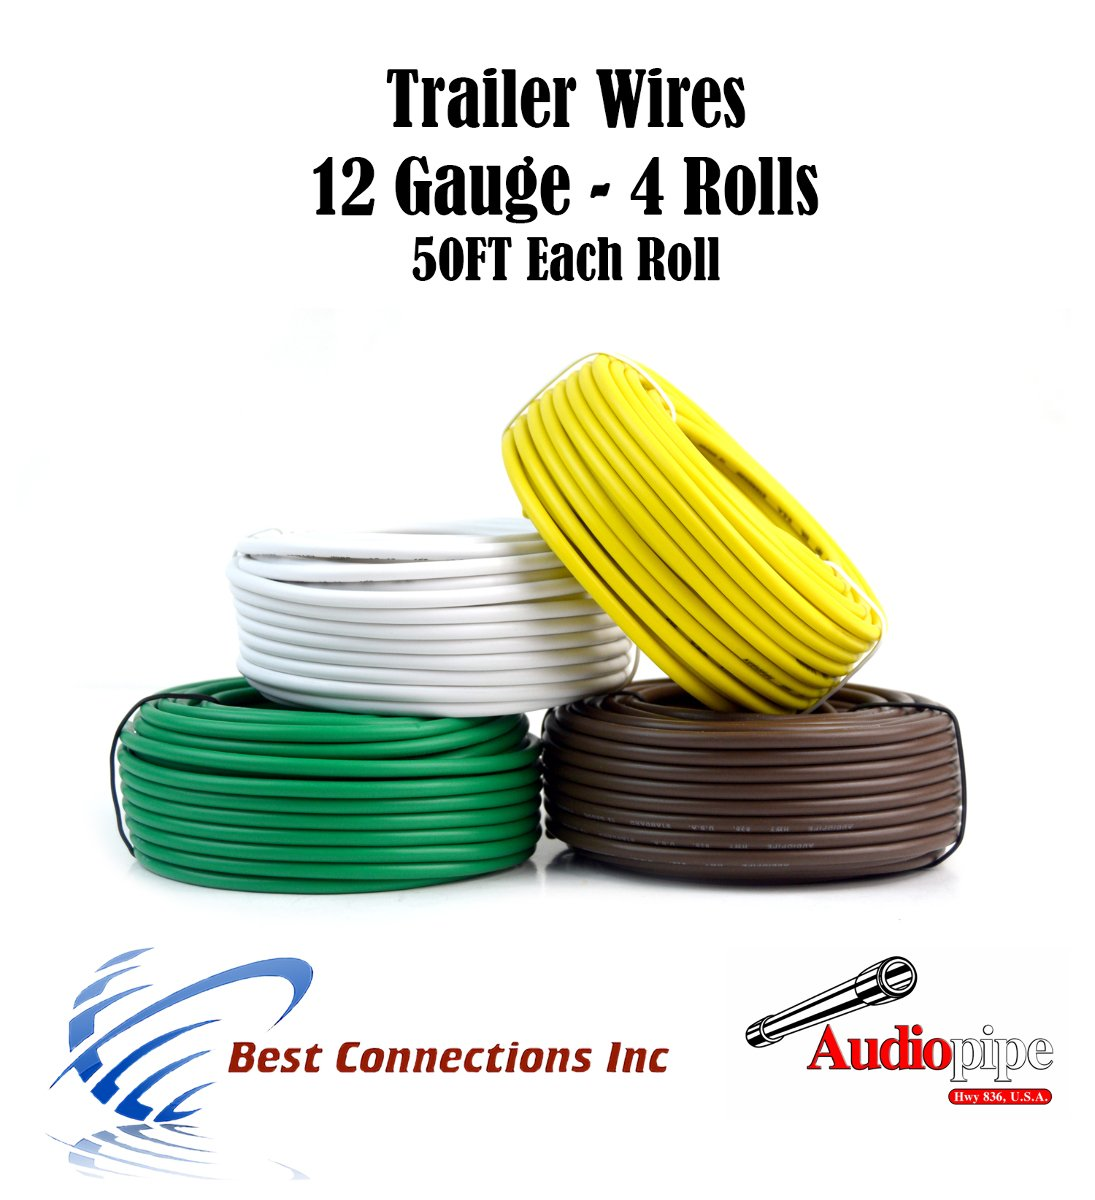 Amazon.com: 4 Way Trailer Wire Light Cable for Harness 50 FT Each ...